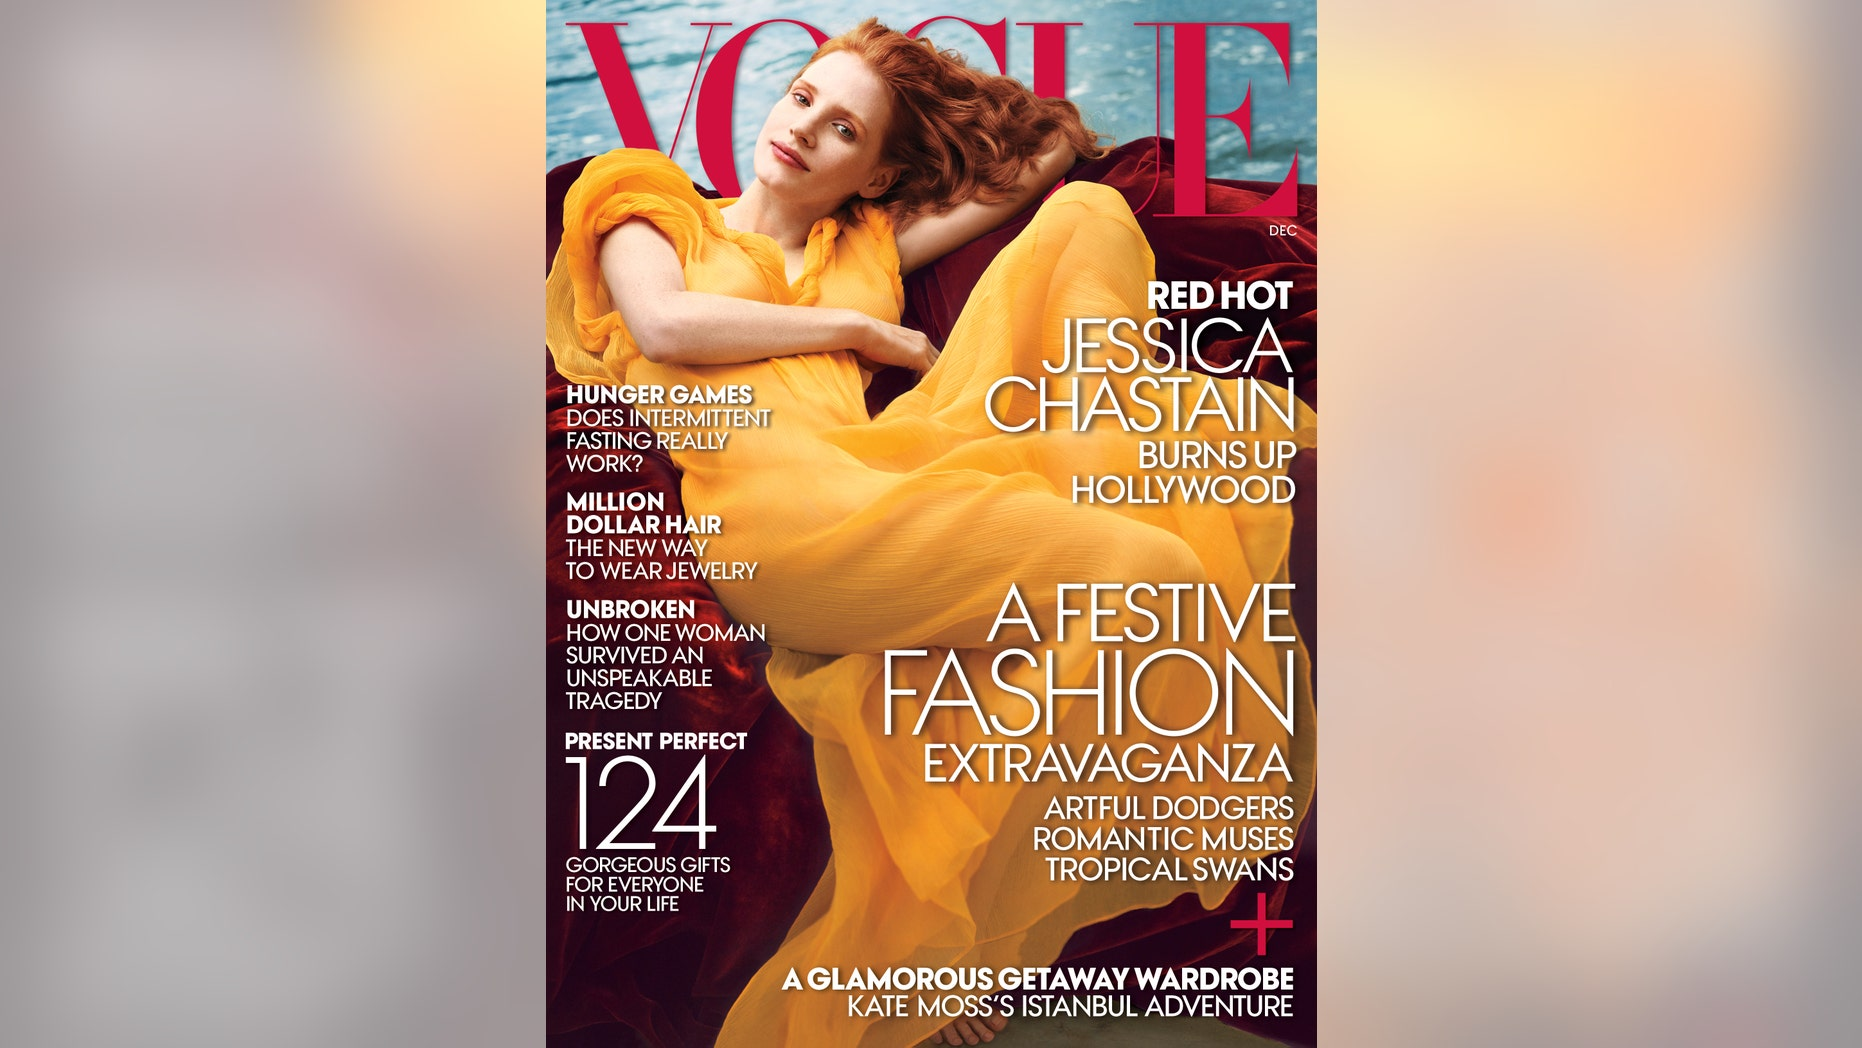 This image released by Vogue shows actress Jessica Chastain on the December cover of Vogue magazine. (AP Photo/Vogue)